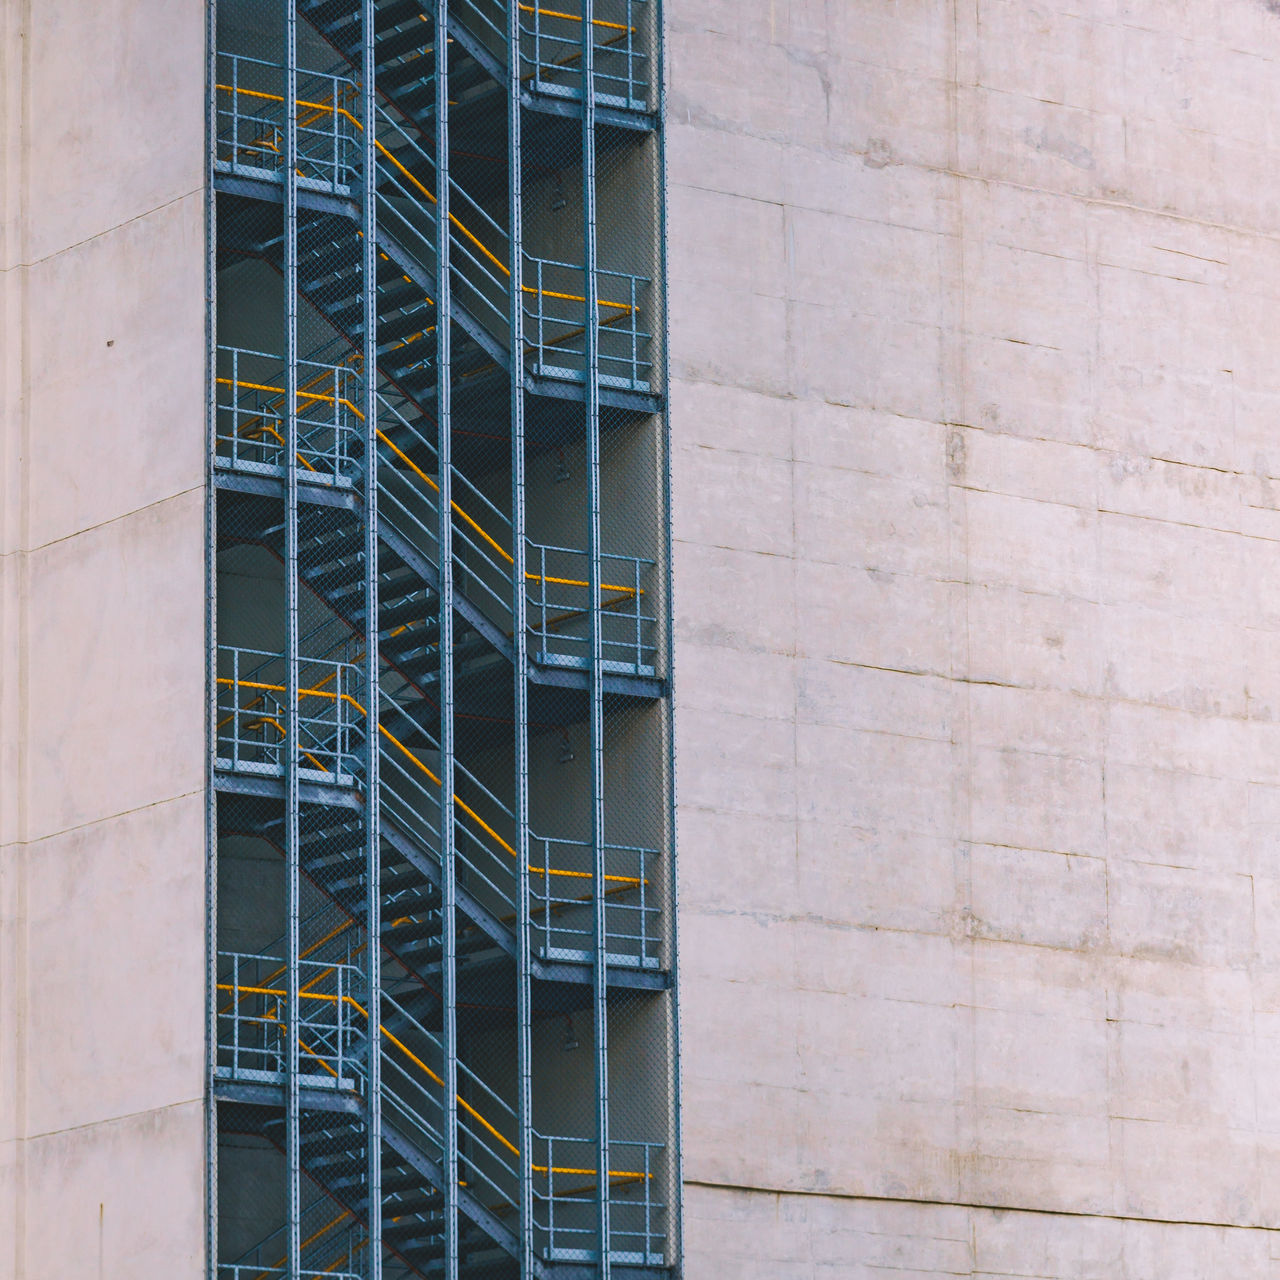 Picture taken from the top of Edificio Martinelli. Architecture Building Exterior Built Structure Concrete Concrete Jungle Concrete Wall Construction Site Day Gray Lines Lines And Shapes Metal Metallic Minimal Minimalism Minimalist Architecture Modern No People Outdoors Pattern Railing Staircase Stairs The Architect - 2017 EyeEm Awards Yellow Neighborhood Map